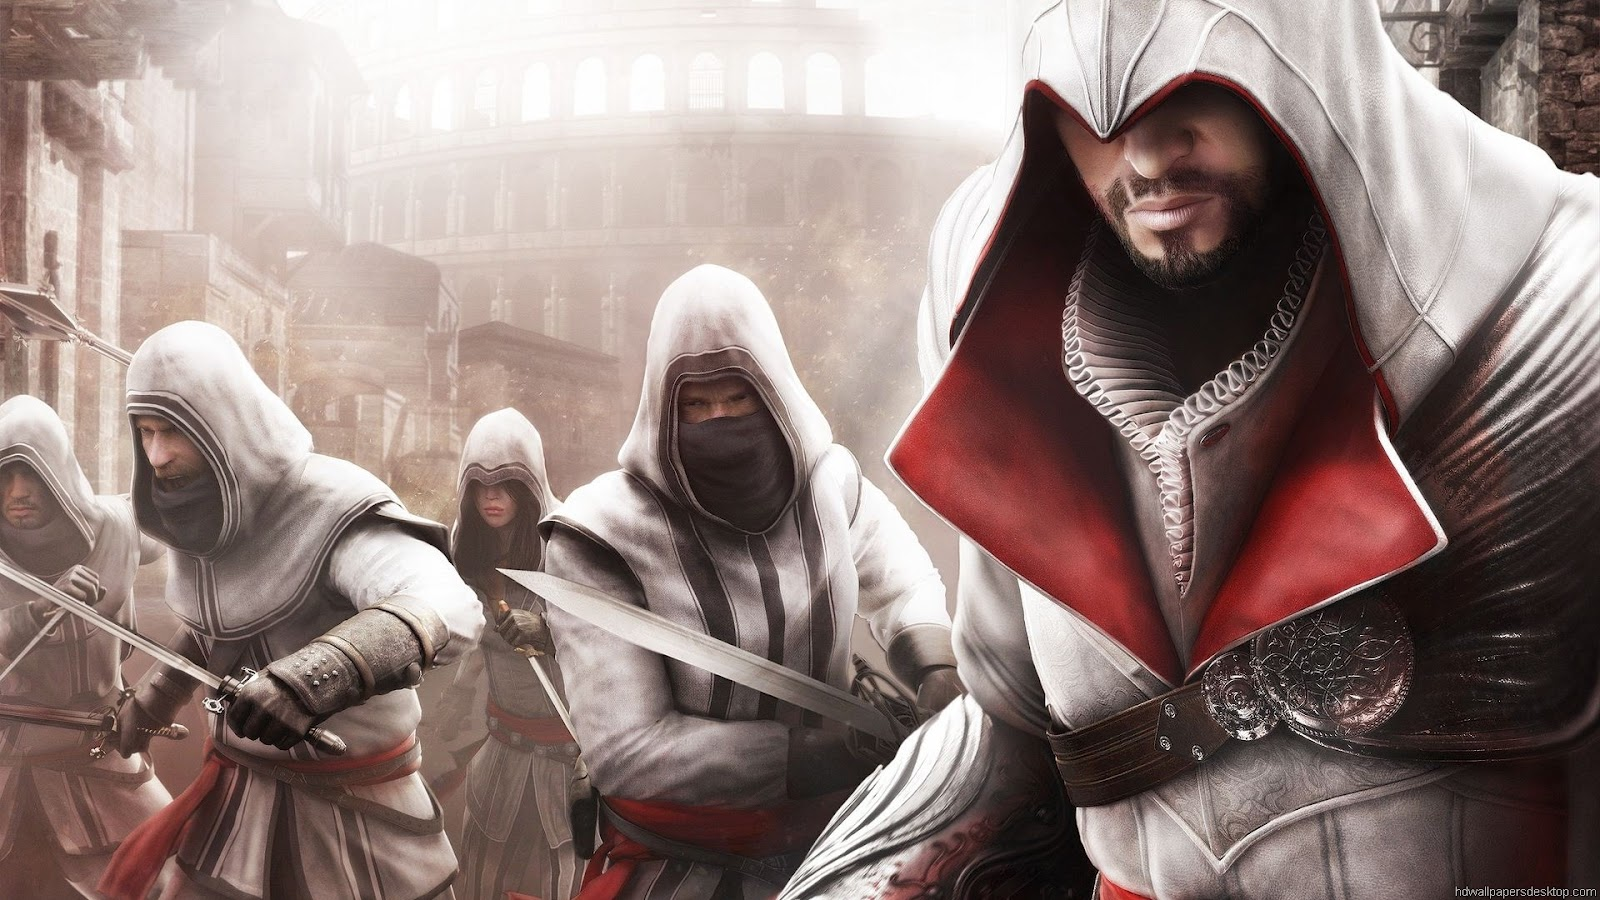 http://1.bp.blogspot.com/-vi28Xkek9IY/UA1je5q0FGI/AAAAAAAAAoA/6zgCcUvEzCk/s1600/Assassin\'s%2520Creed%2520Brotherhood%25203.jpg